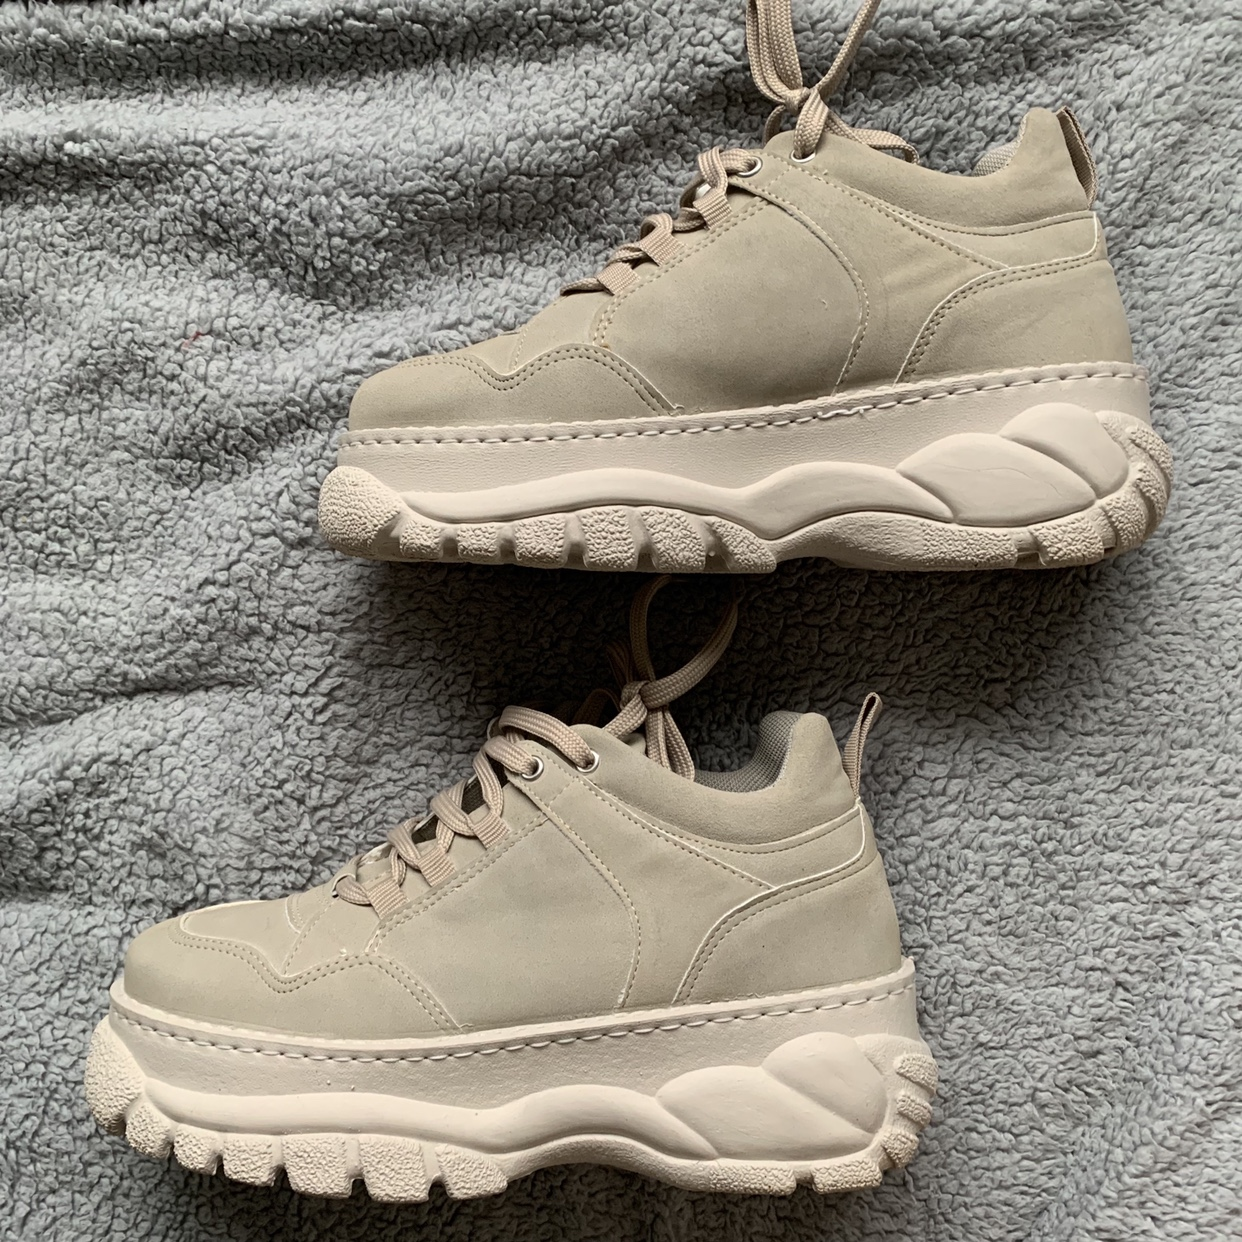 Topshop cairo chunky trainers. A beige